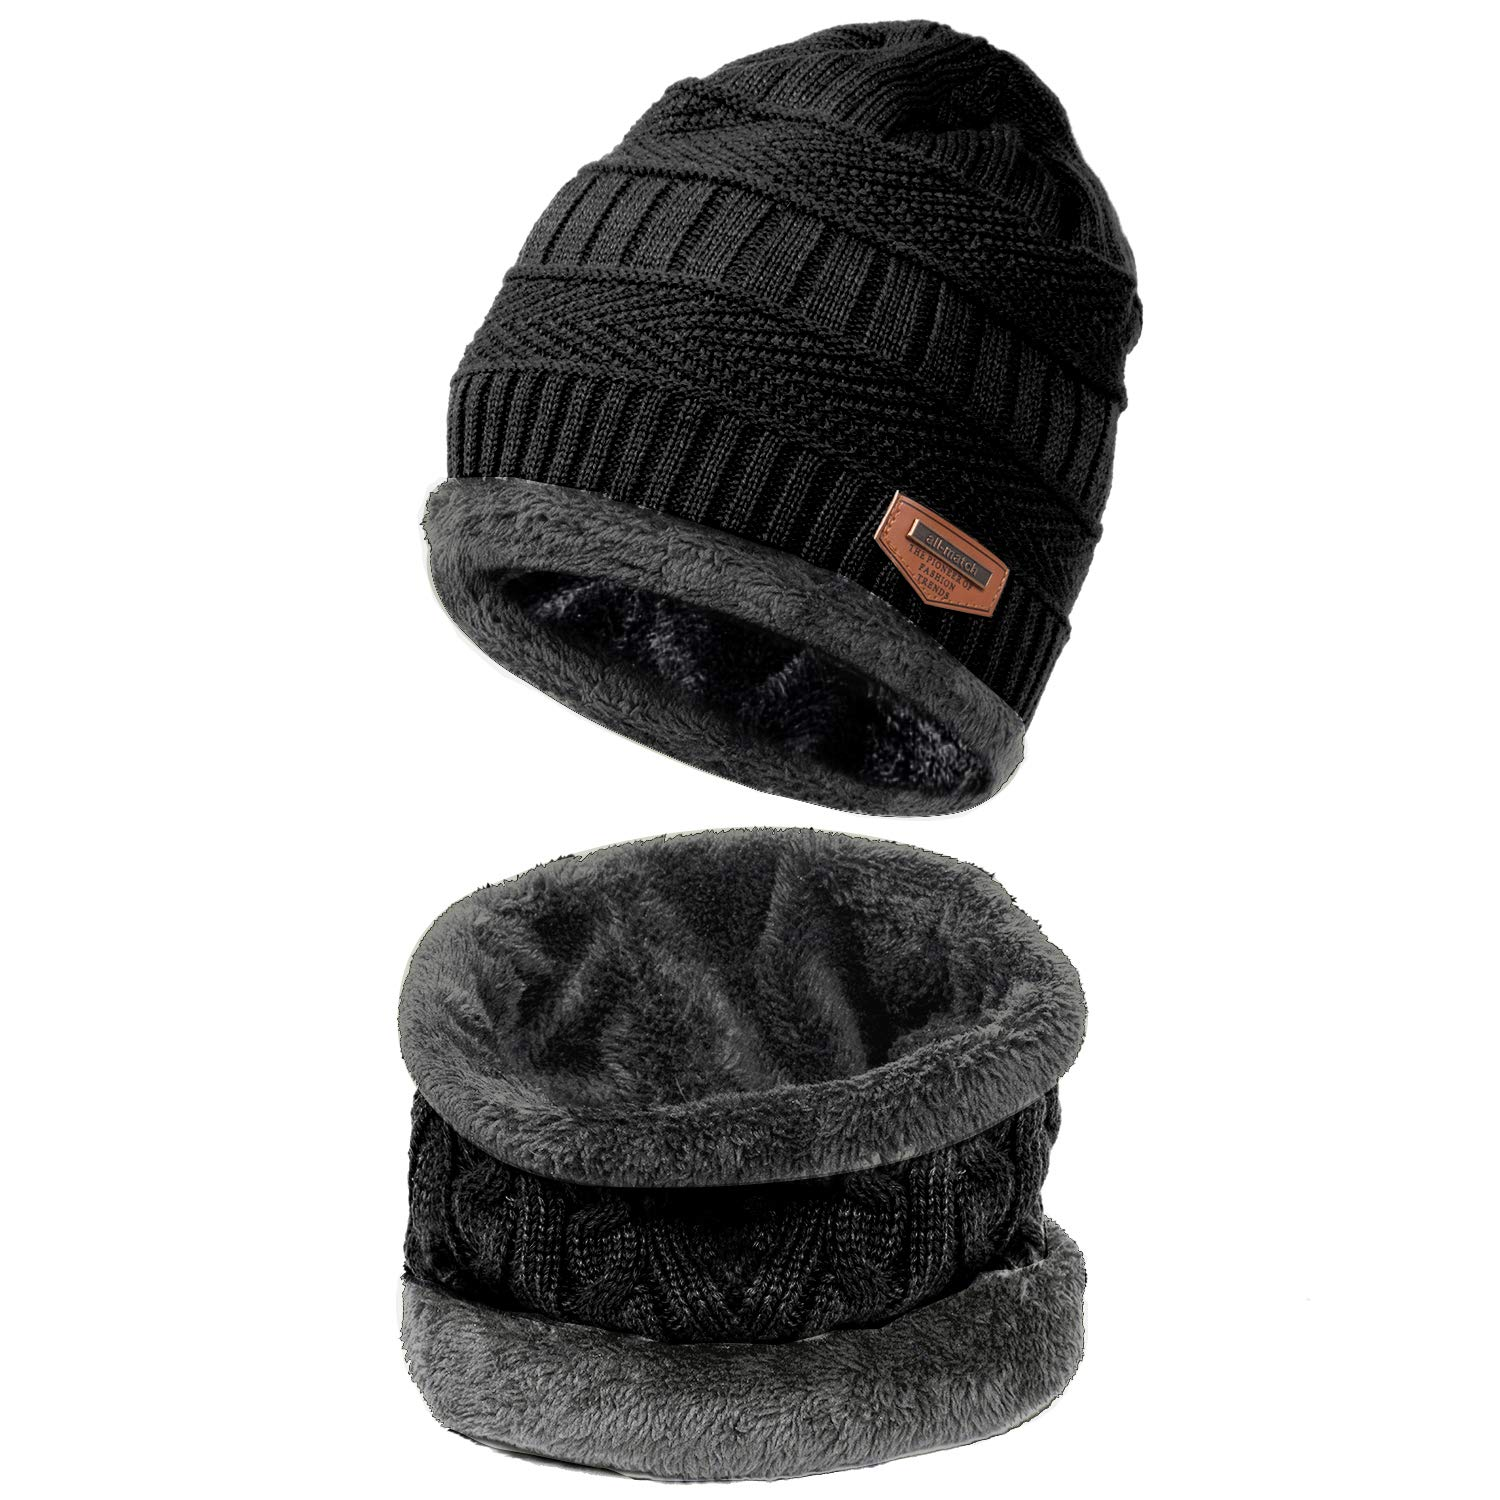 9960f4c682efa7 Amazon.com: HiCool Winter Beanie Hat Scarf Set Warm Knit Hat Thick Knit  Snow Ski Skull Cap Neck Warmer Fleece Lined Winter Hat & Scarf for Men  Women: Sports ...